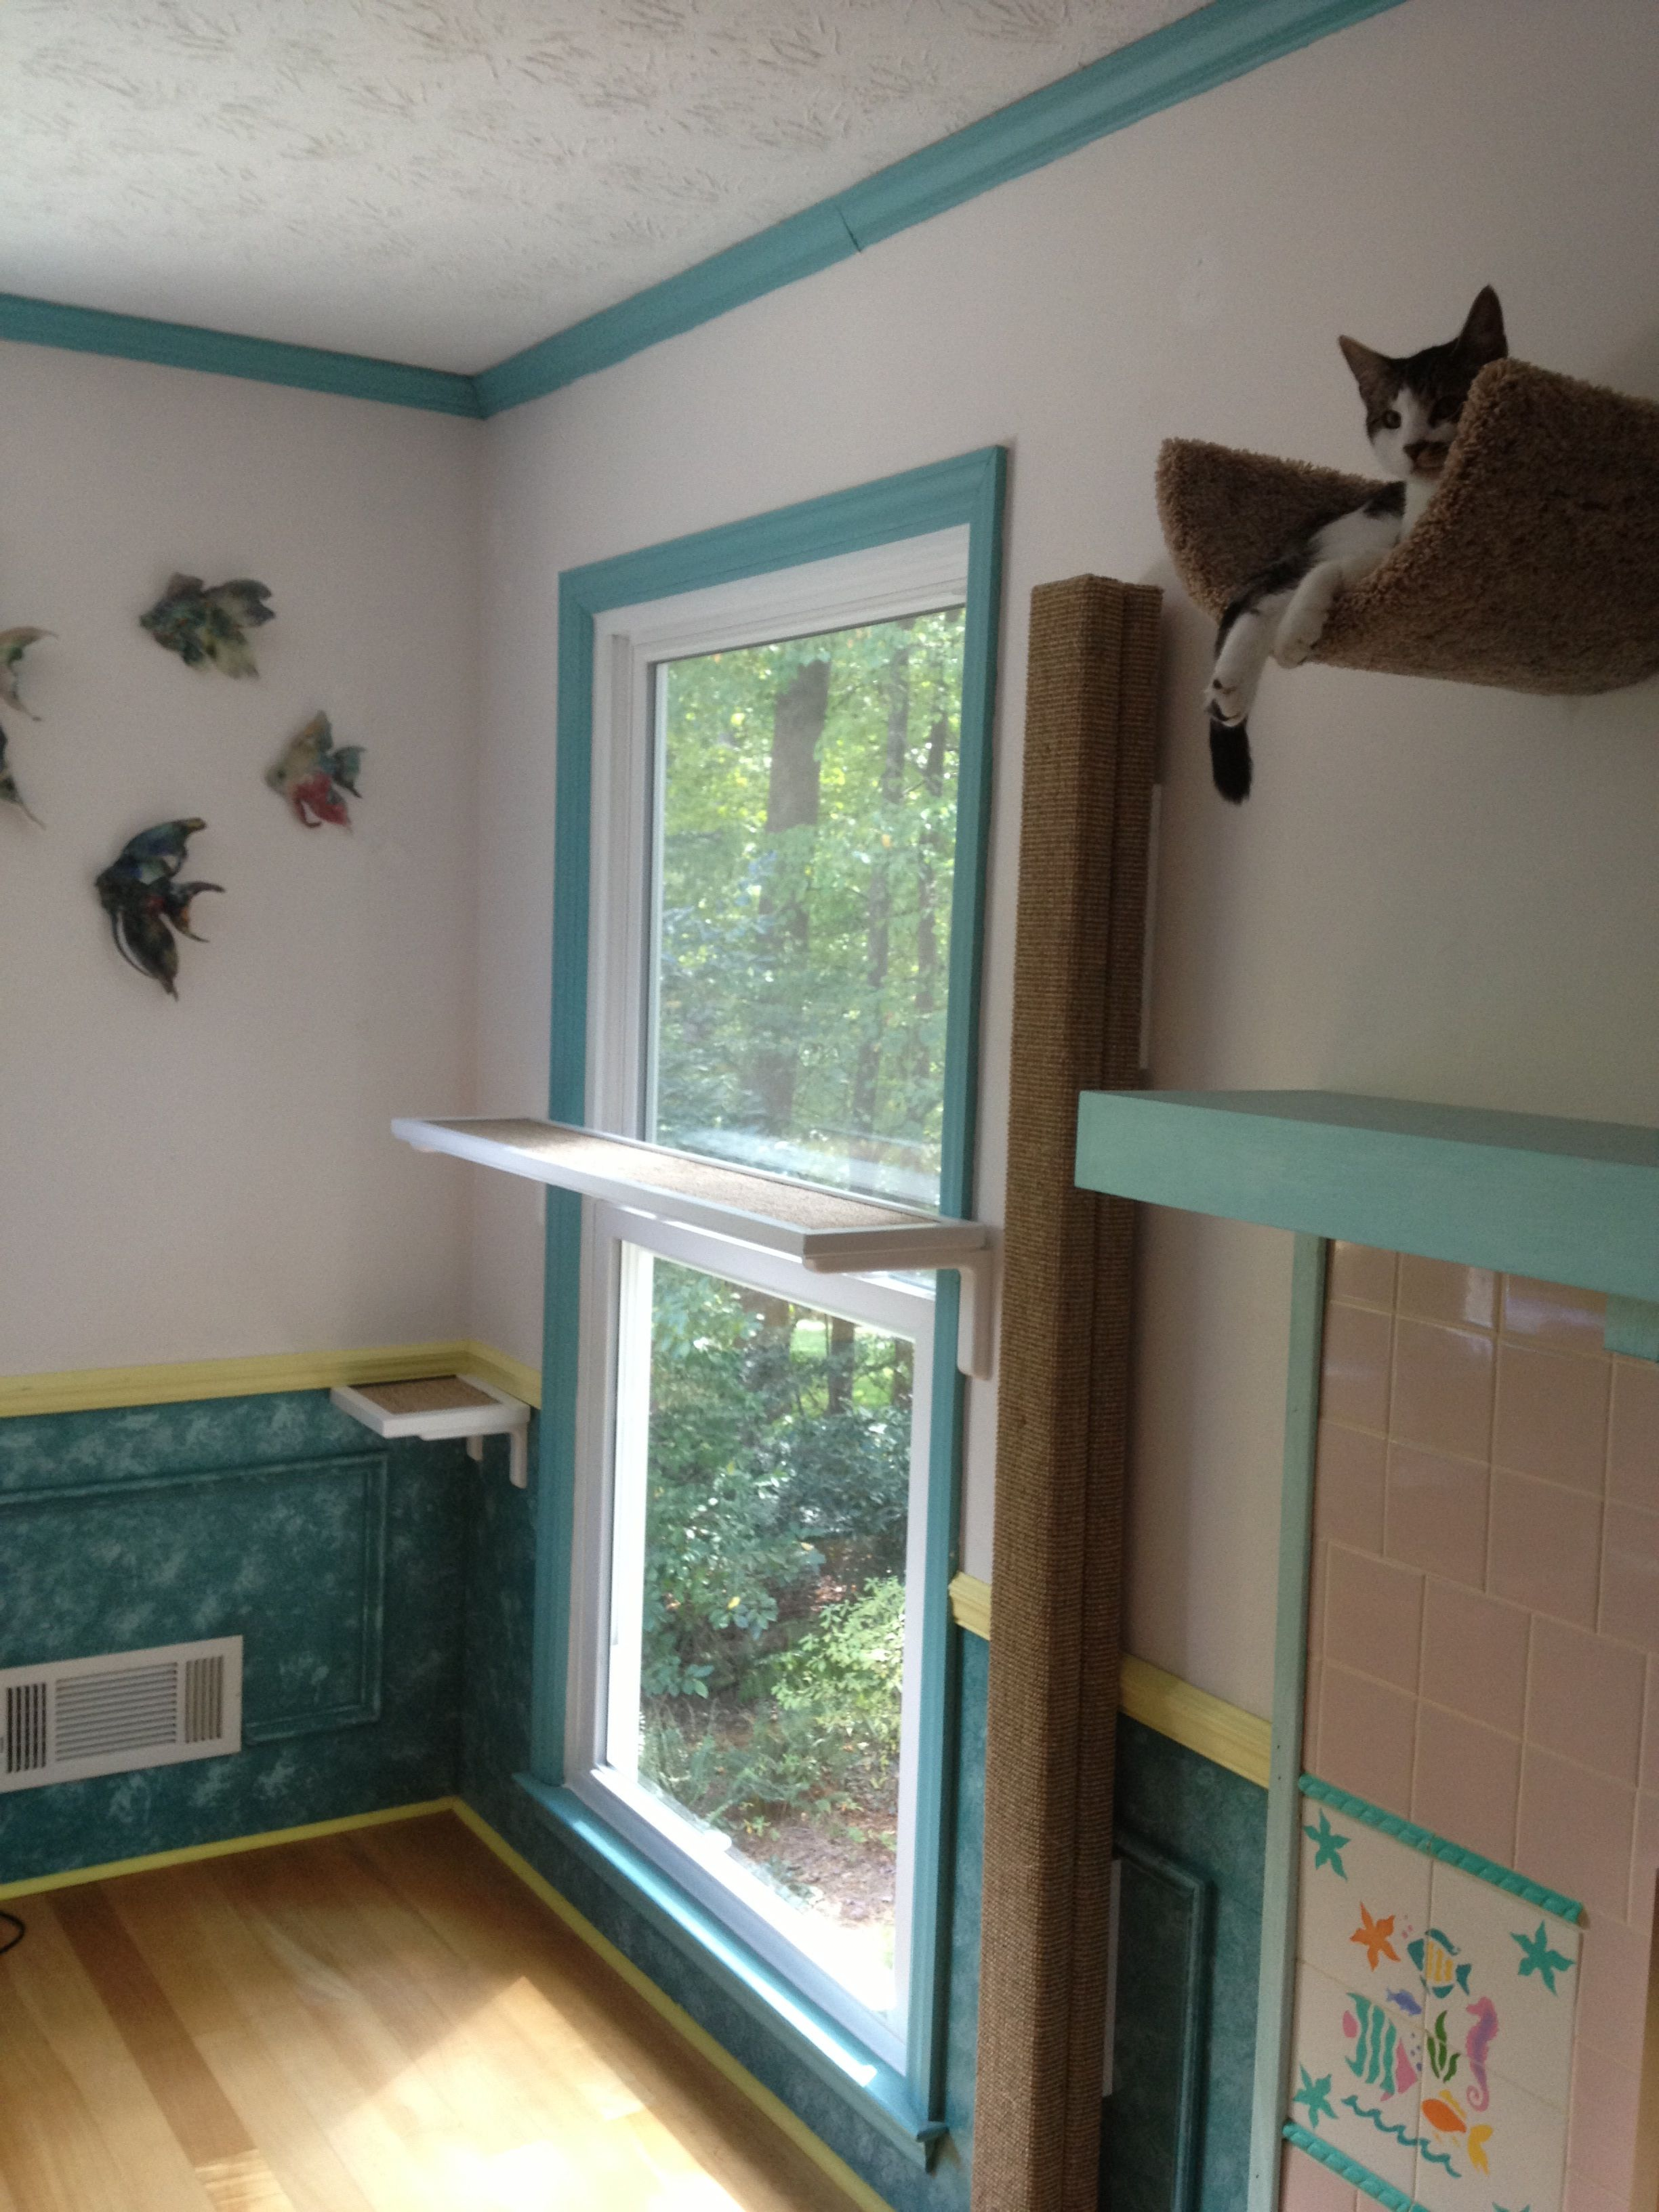 Cat shelf across a window lets cats look outside easily also has cat shelf across a window also has a great vertical climbing pole but jojo might not use one i am not a big fan of using carpet for the pole amipublicfo Image collections